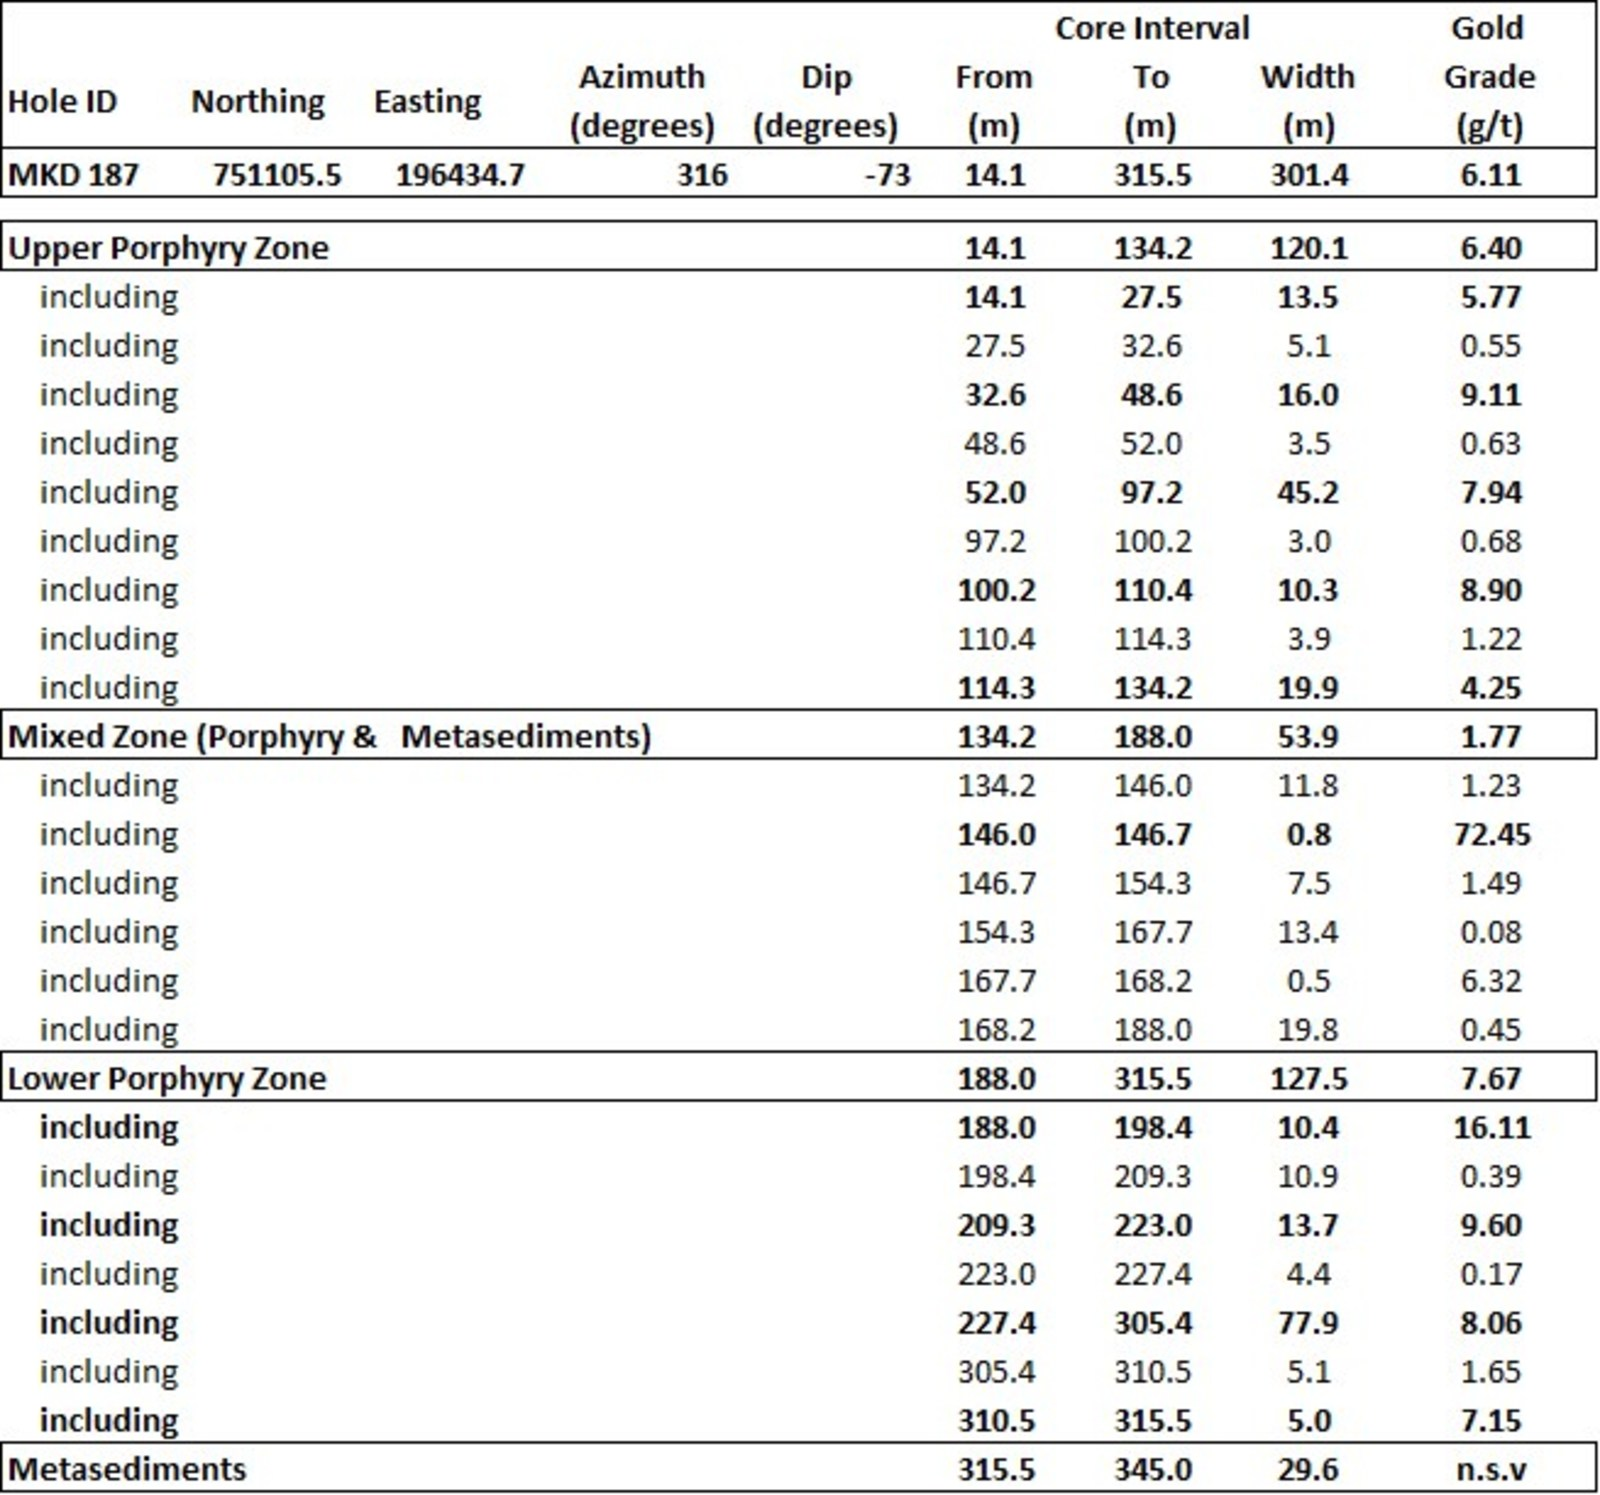 Table 1:  Summary of Assay Intervals from MKD 187